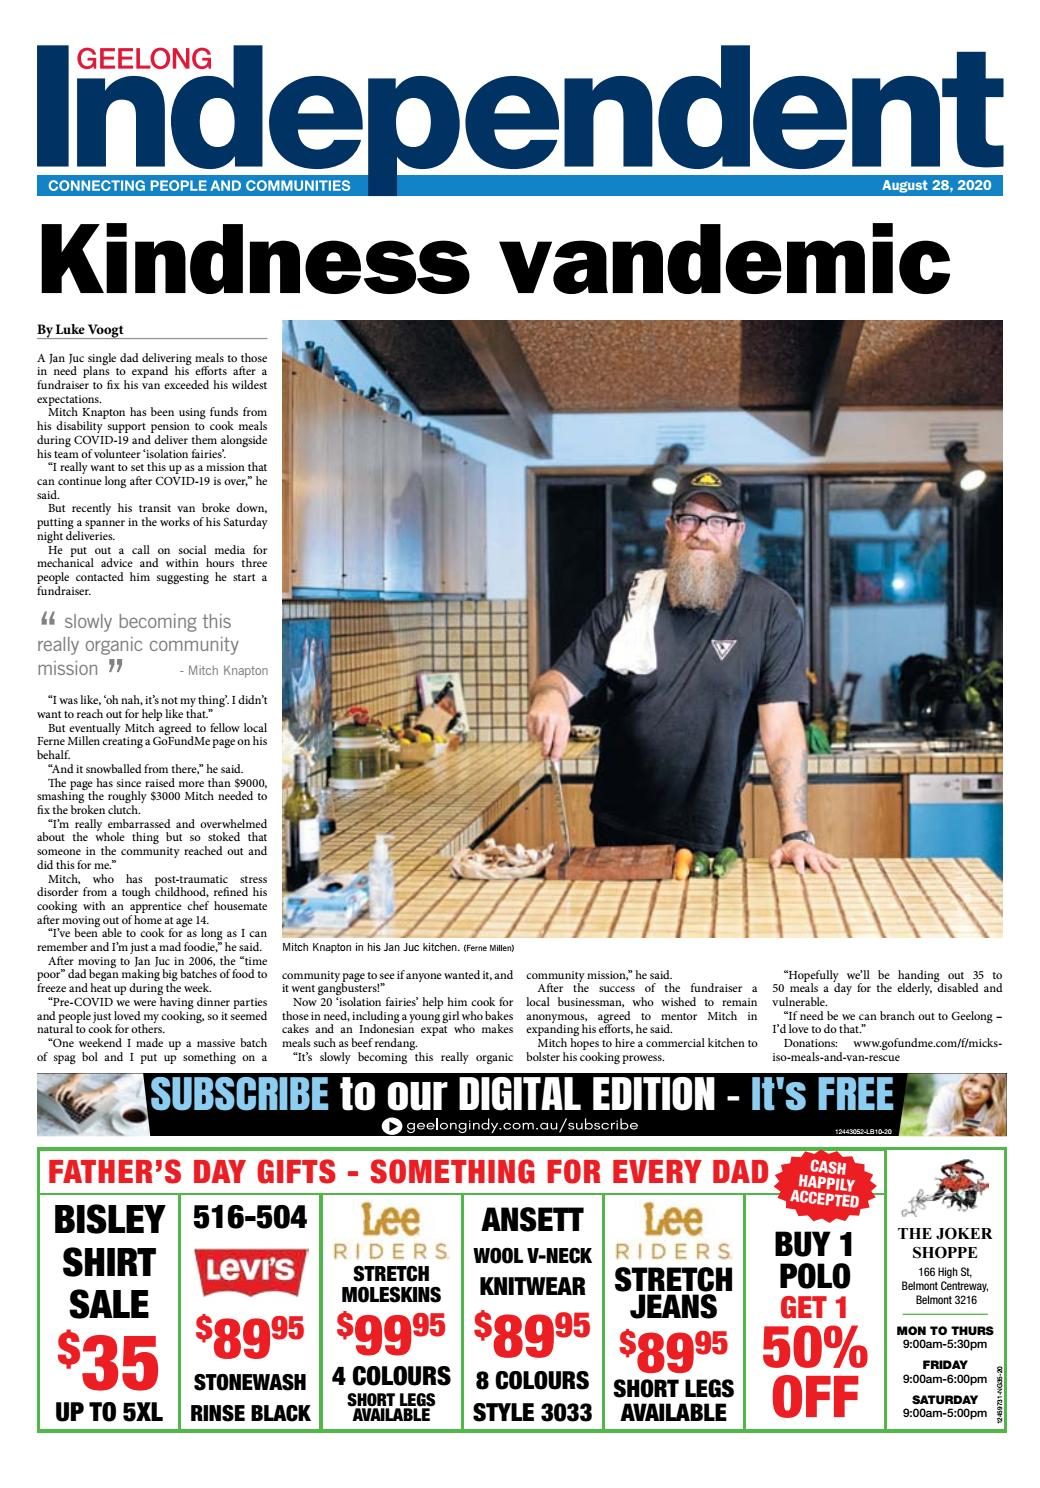 Geelong Indy 28th August 2020 By Star News Group Issuu